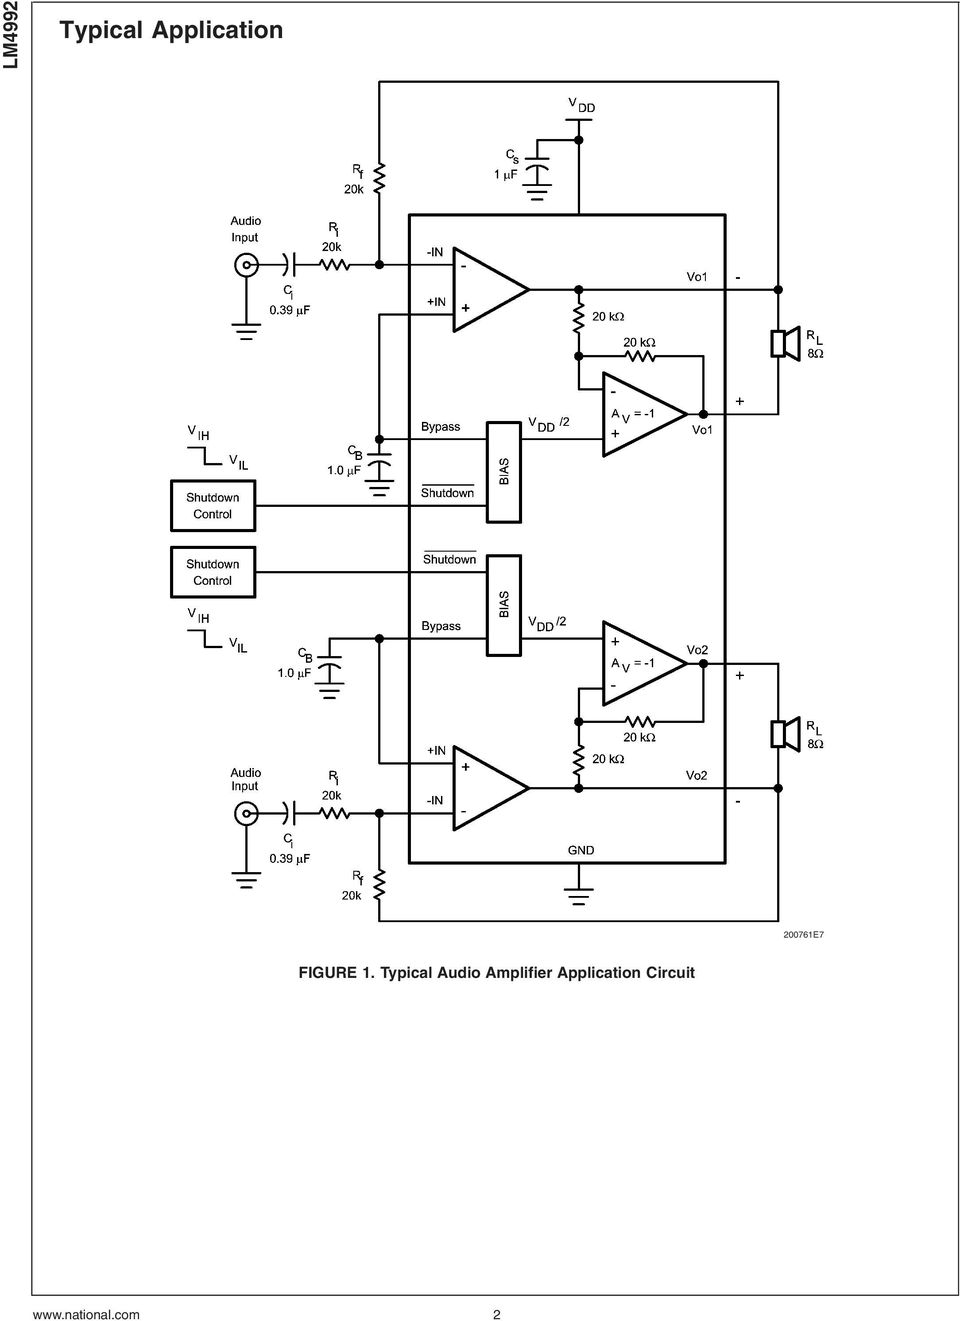 Lm Mw Stereo Cell Phone Audio Amplifier Pdf 25w Hifi With Mosfet Circuit Diagram Typical